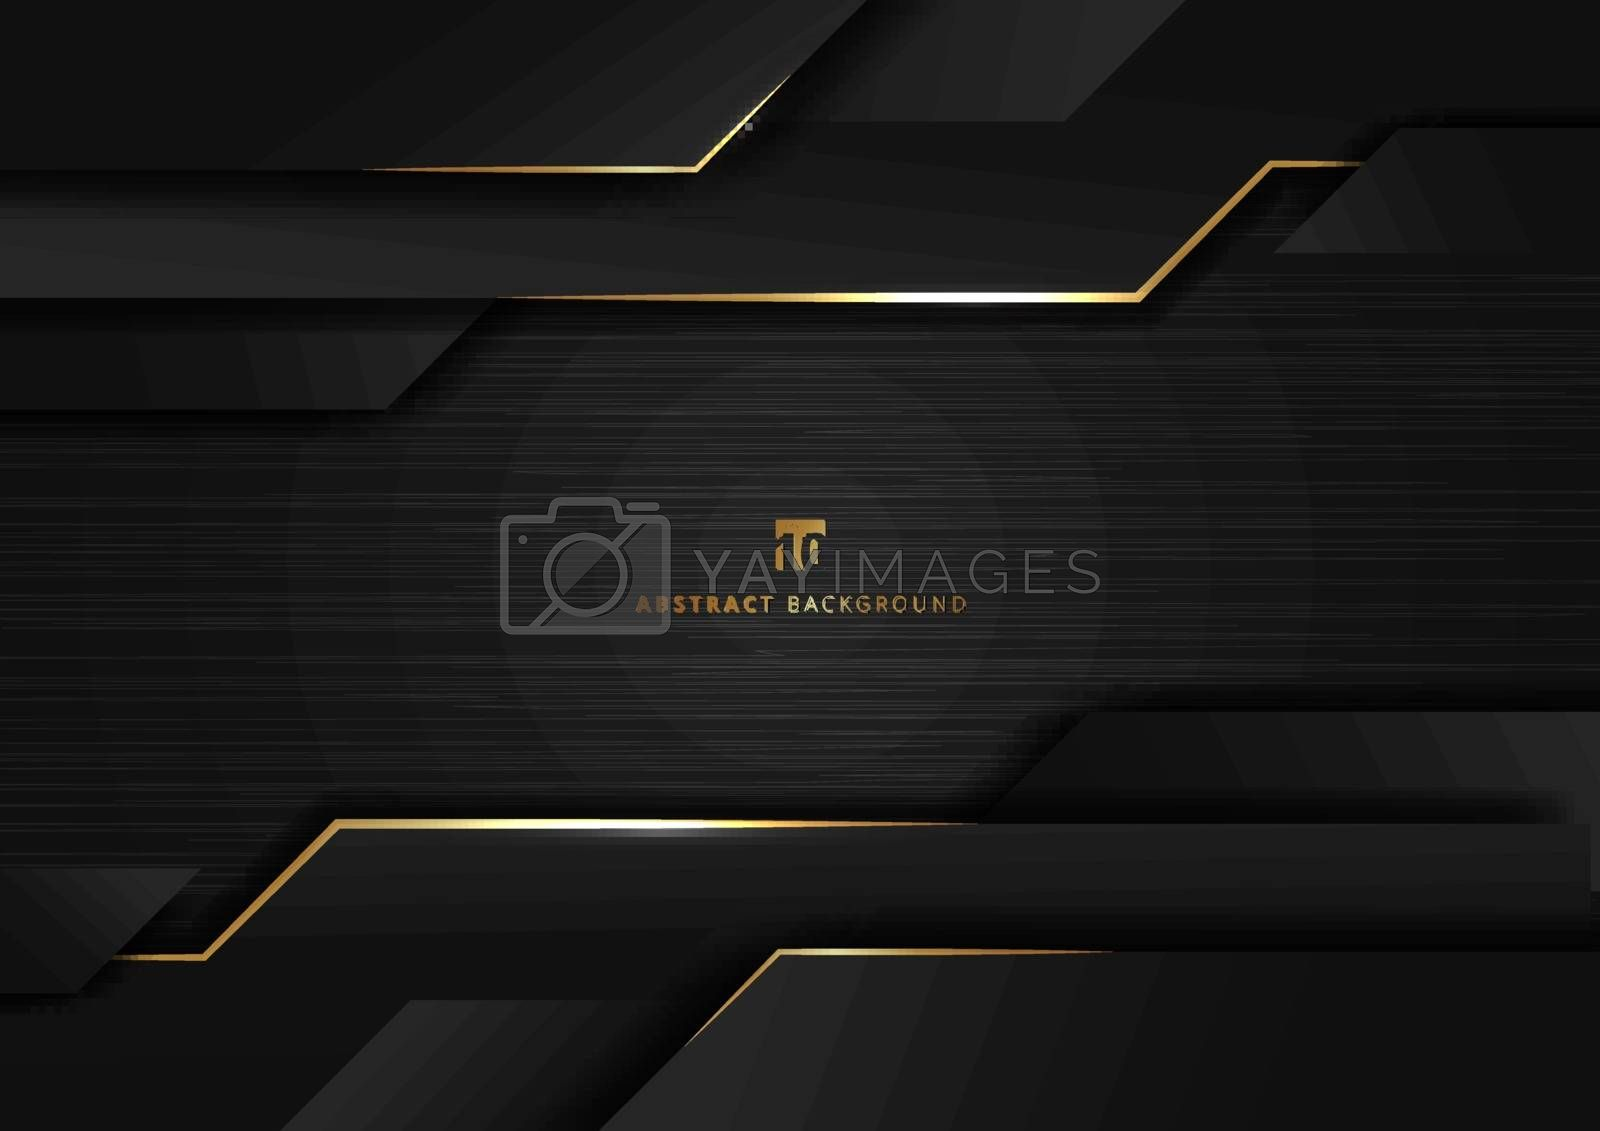 Abstract technology geometric glowing gold and black color shiny motion dark metallic background. Template with header and footers for brochure, print, ad, magazine, poster, website, magazine, leaflet, annual report. Vector corporate